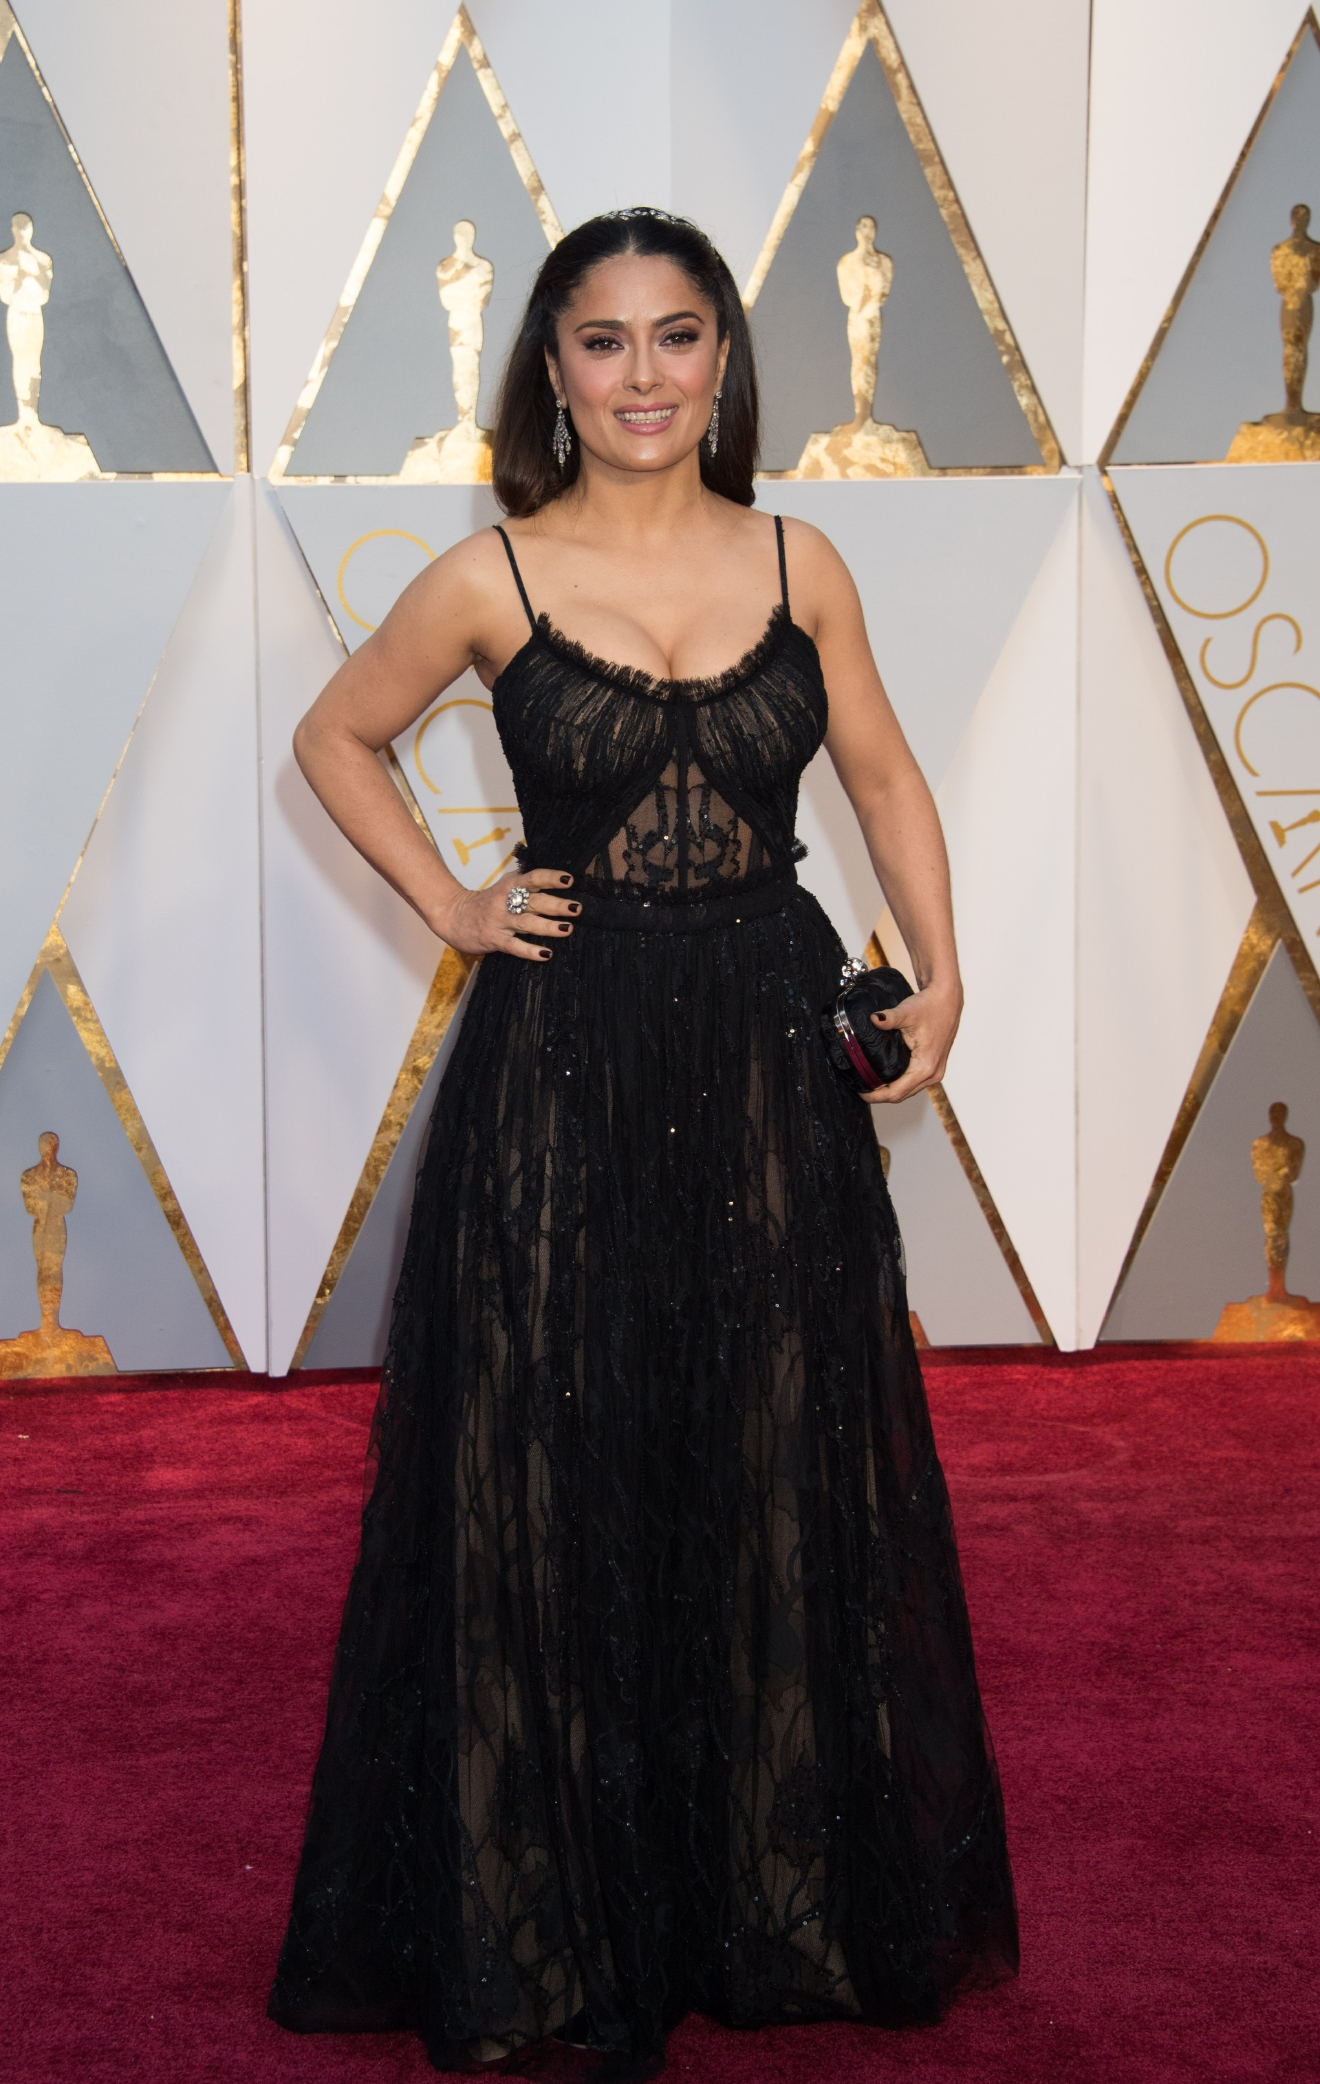 #23: Salma Hayek. It's hard for Salma not to be stunning - but we love the simple changes to a classic black dress that makes it stand out. (Image: AMPAS)